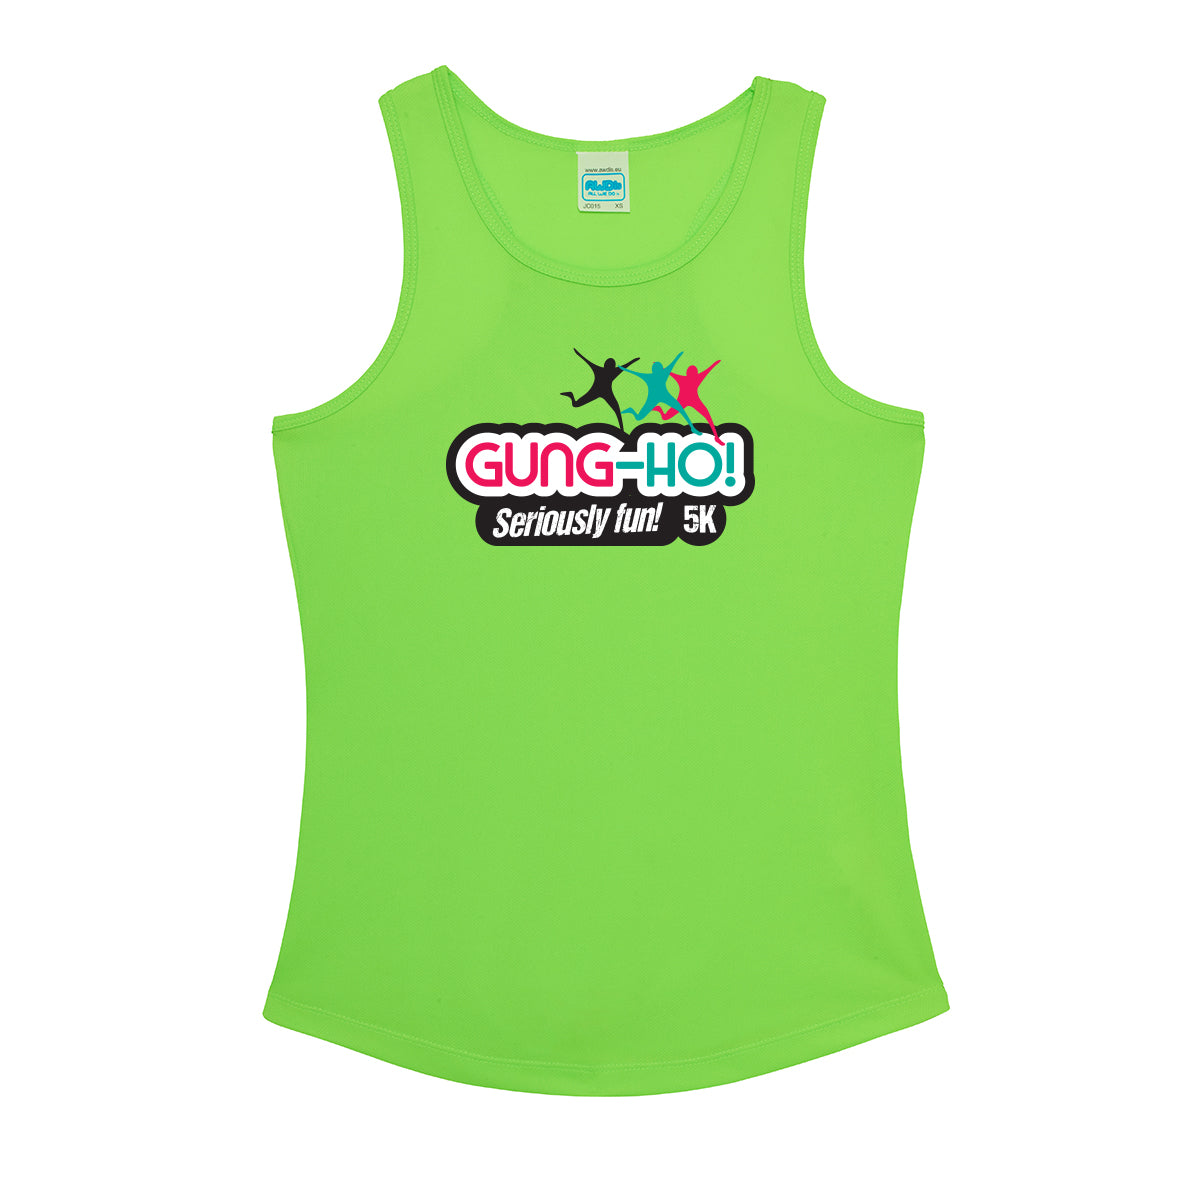 Gung-Ho! Women's Sports Vest